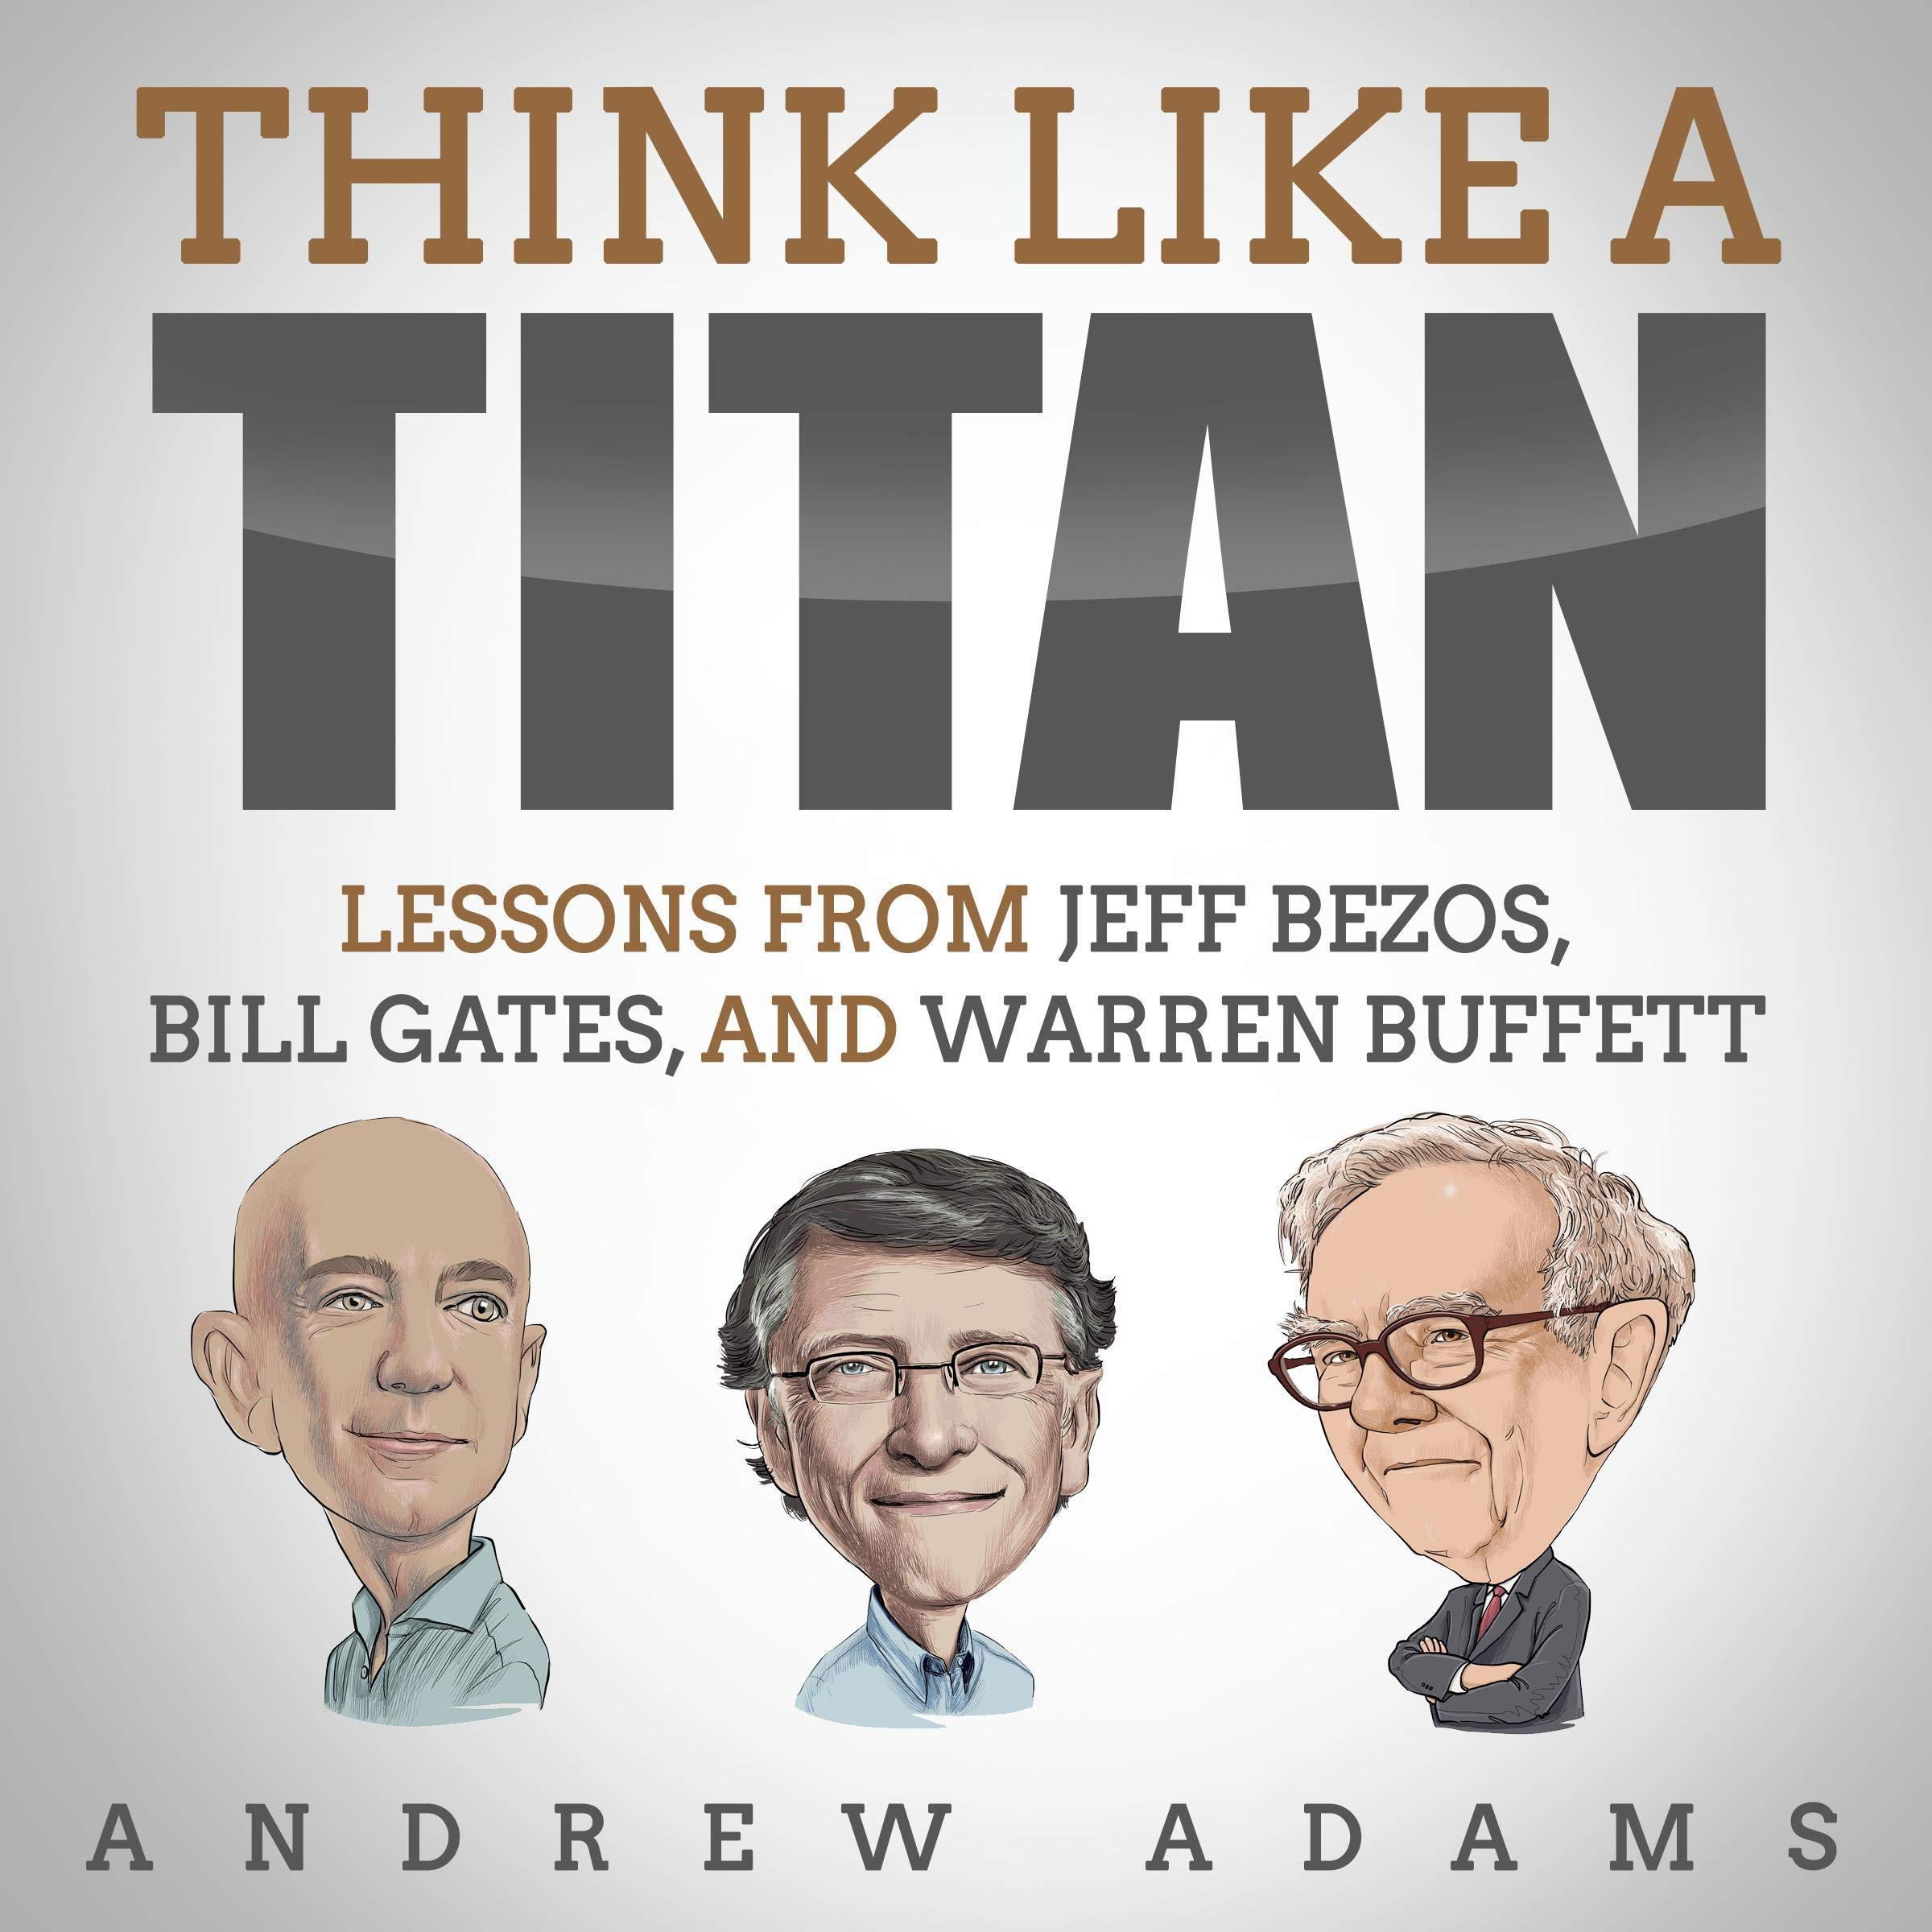 Think Like a Titan: Lessons from Jeff Bezos, Bill Gates, and Warren Buffett